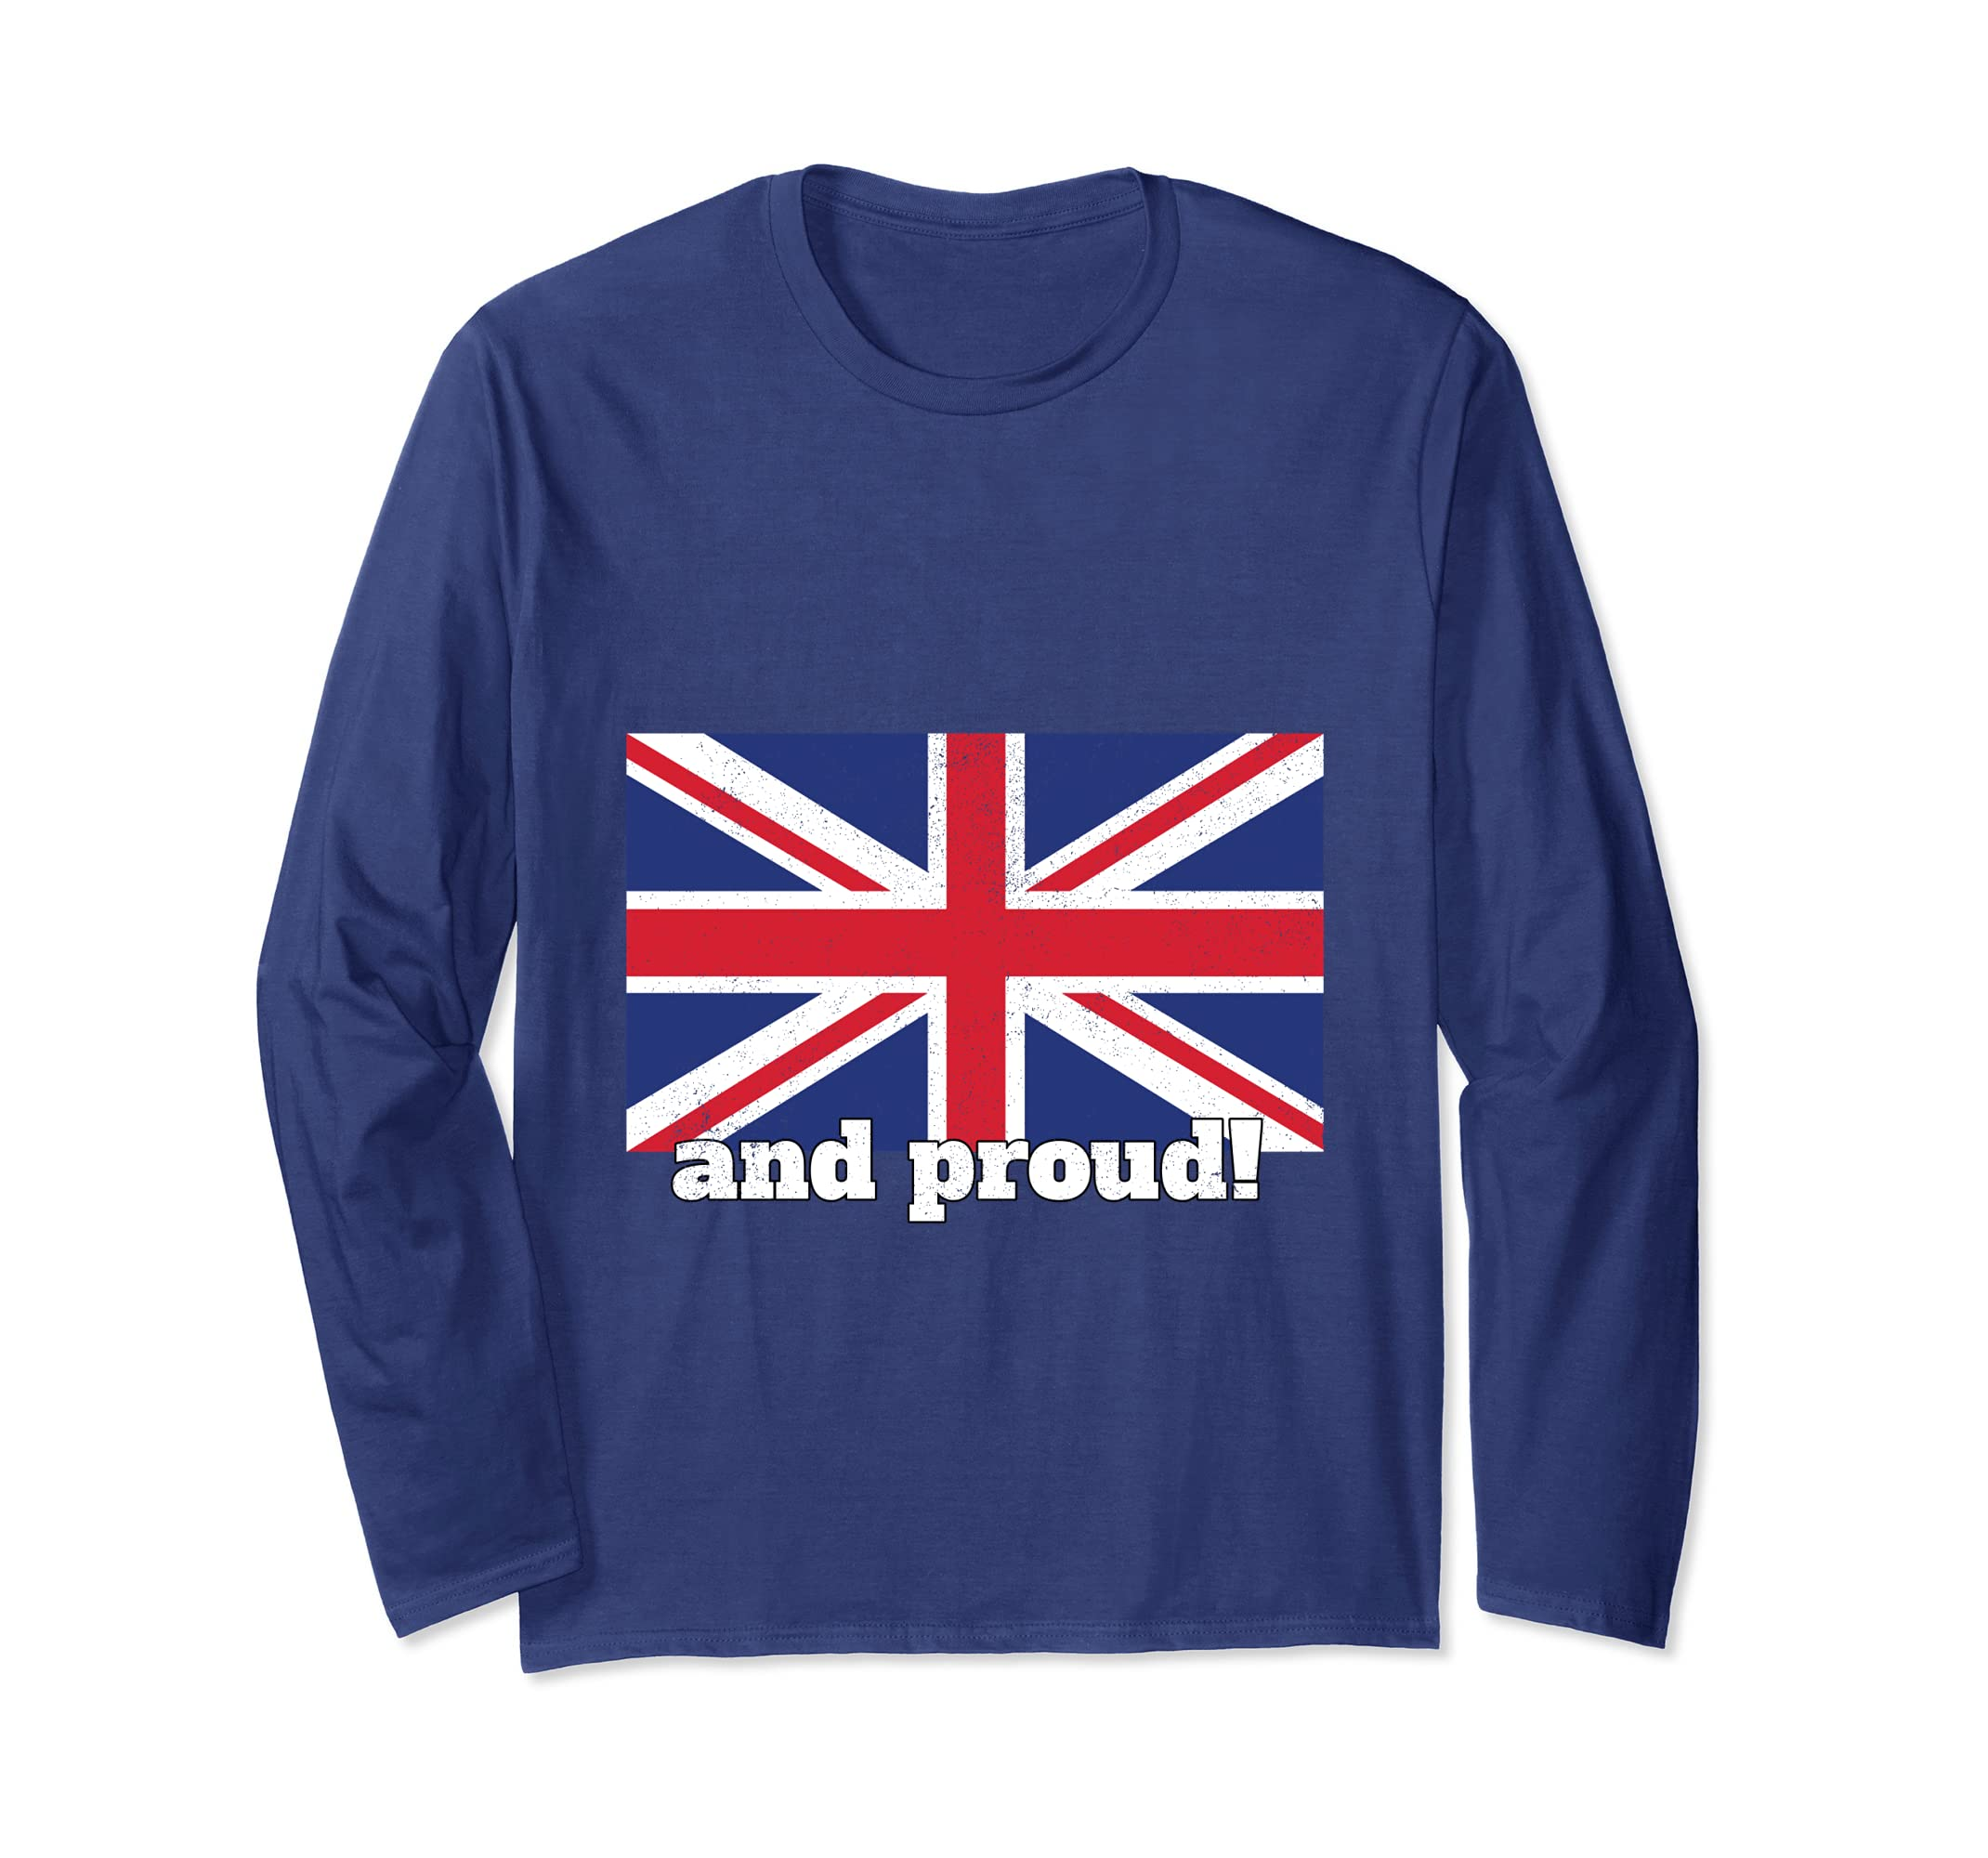 british and proud, union flag, uk, patriotic, england-Bawle